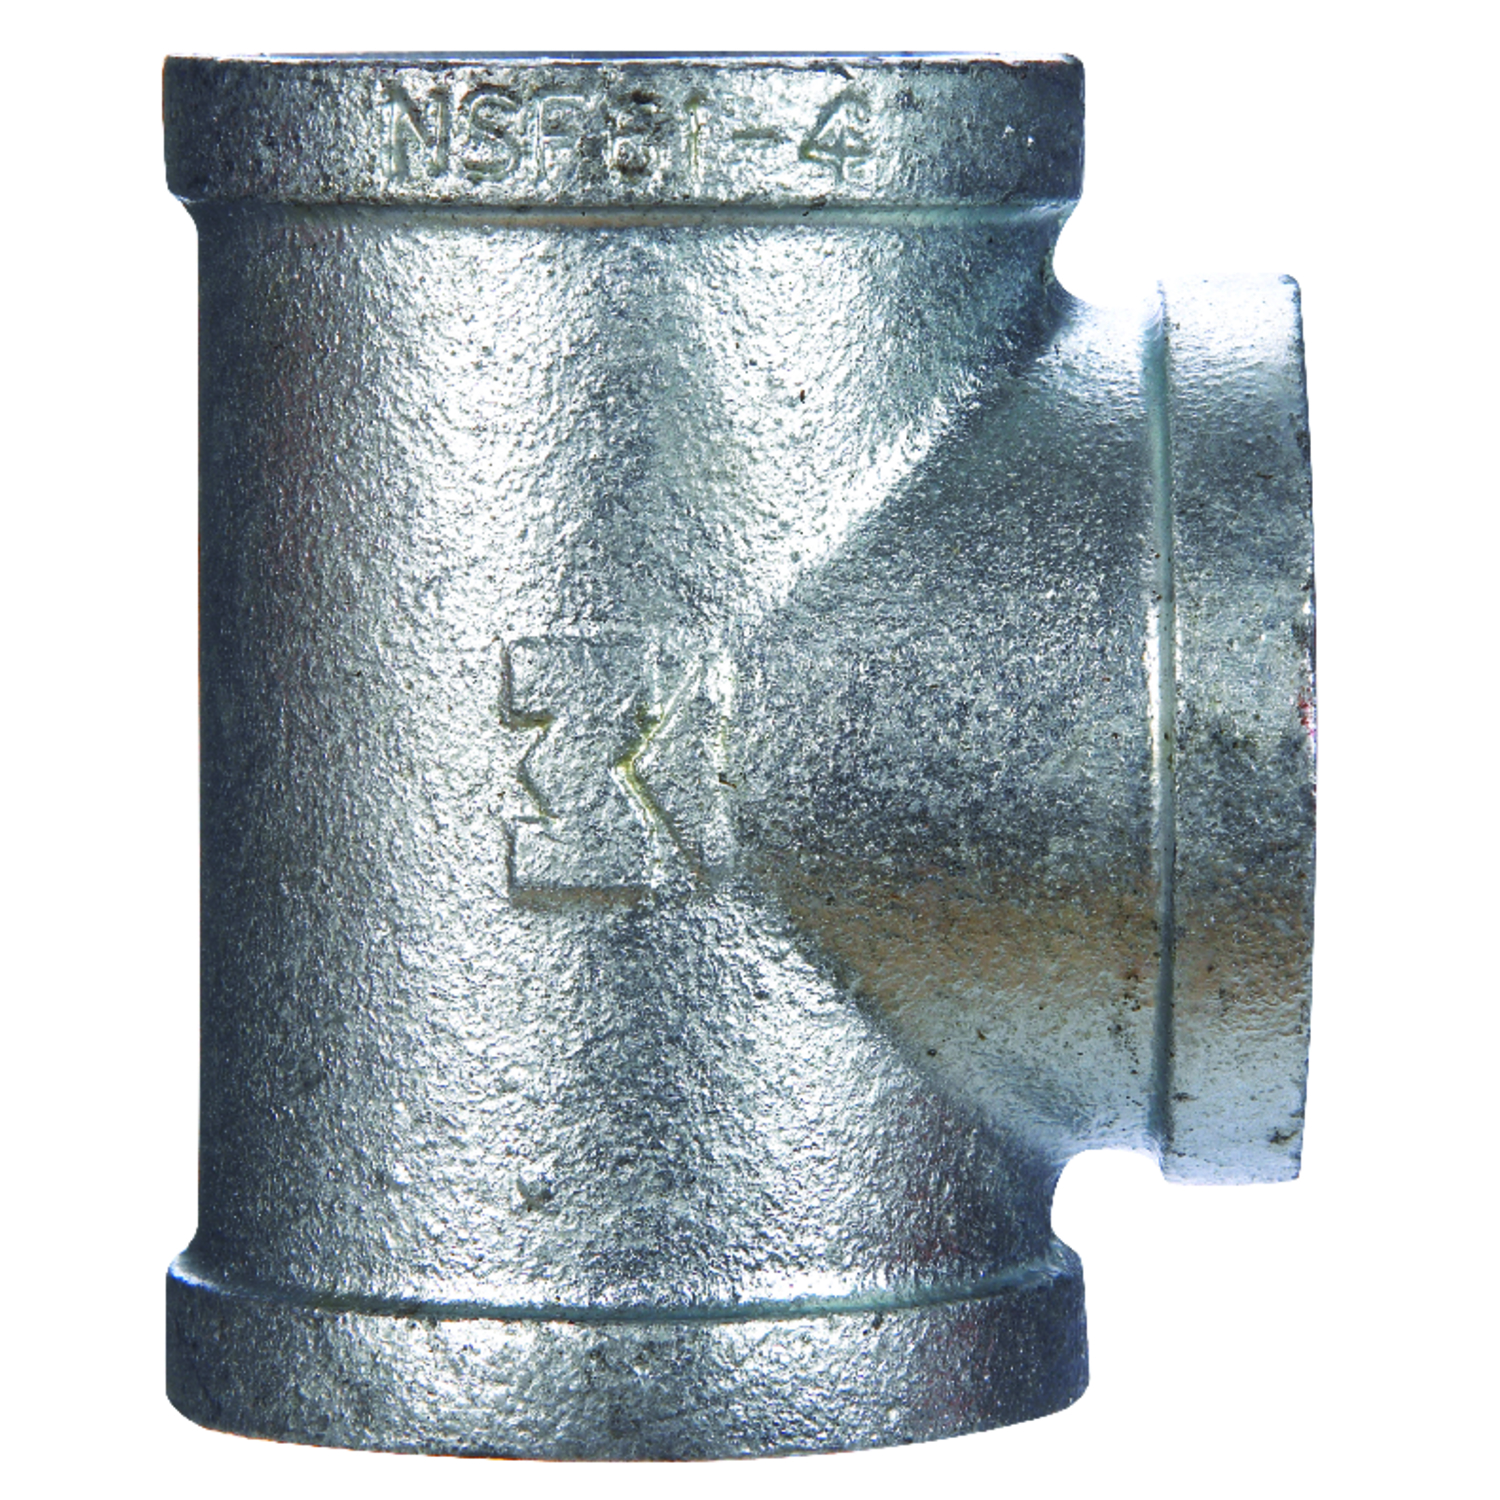 B & K  1 in. FPT   x 1 in. Dia. FPT  Galvanized  Malleable Iron  Tee